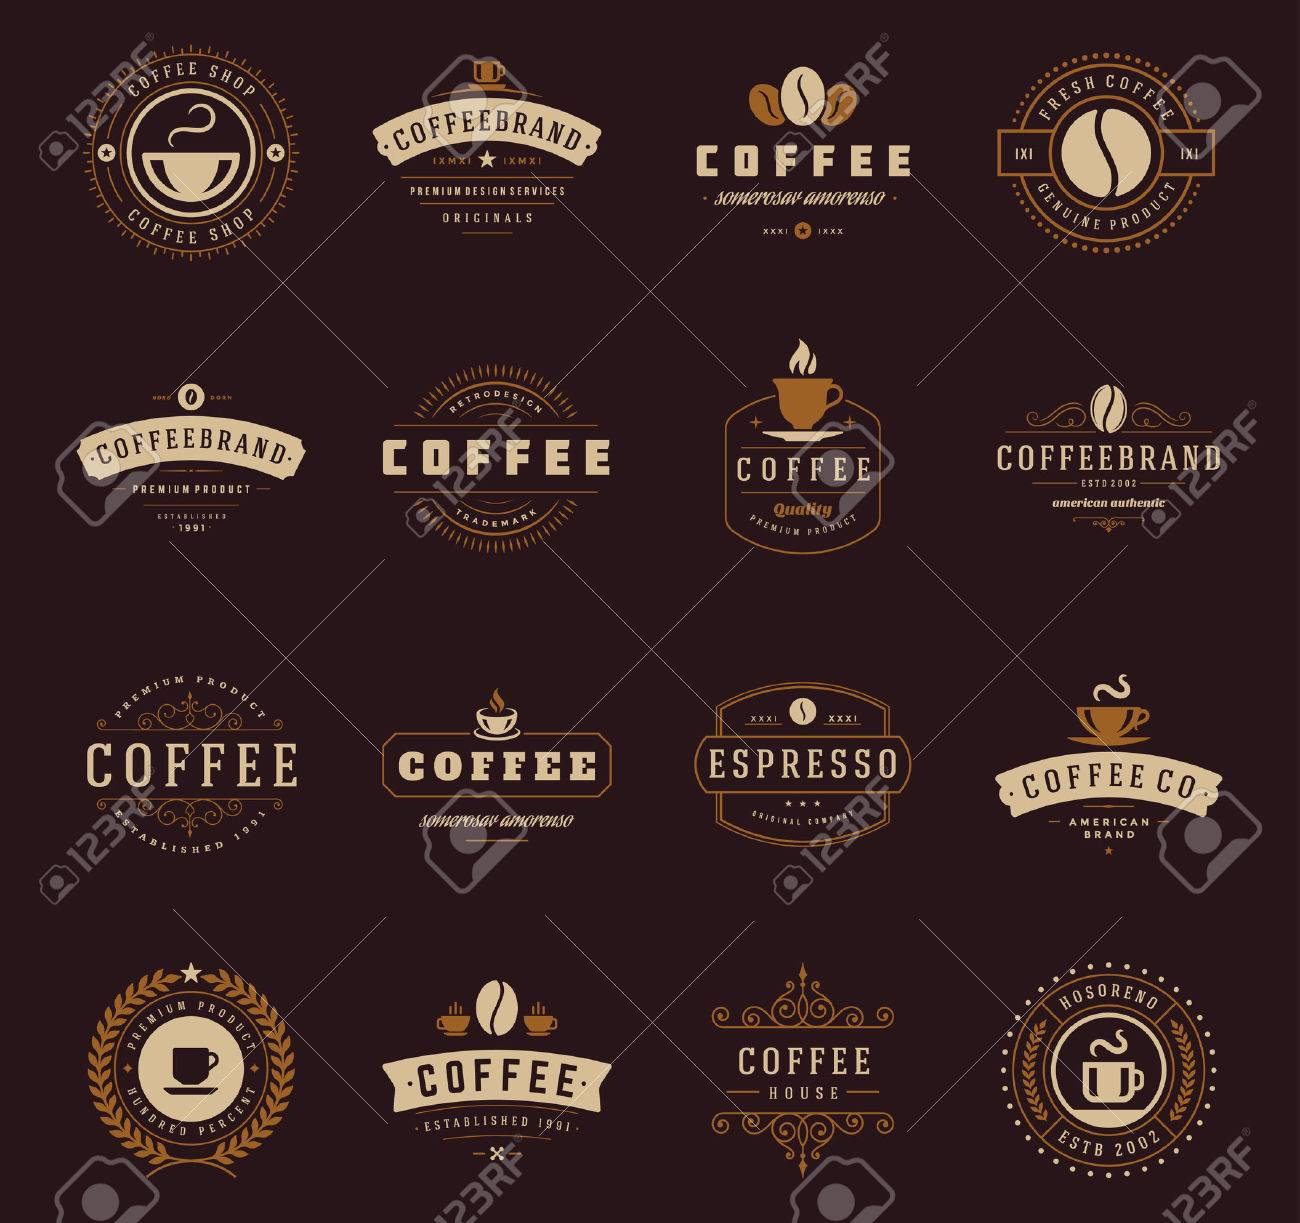 Coffee Shop Logos, Badges and Labels Design Elements set. Cup, beans, cafe vintage style objects retro vector illustration. - 46917588